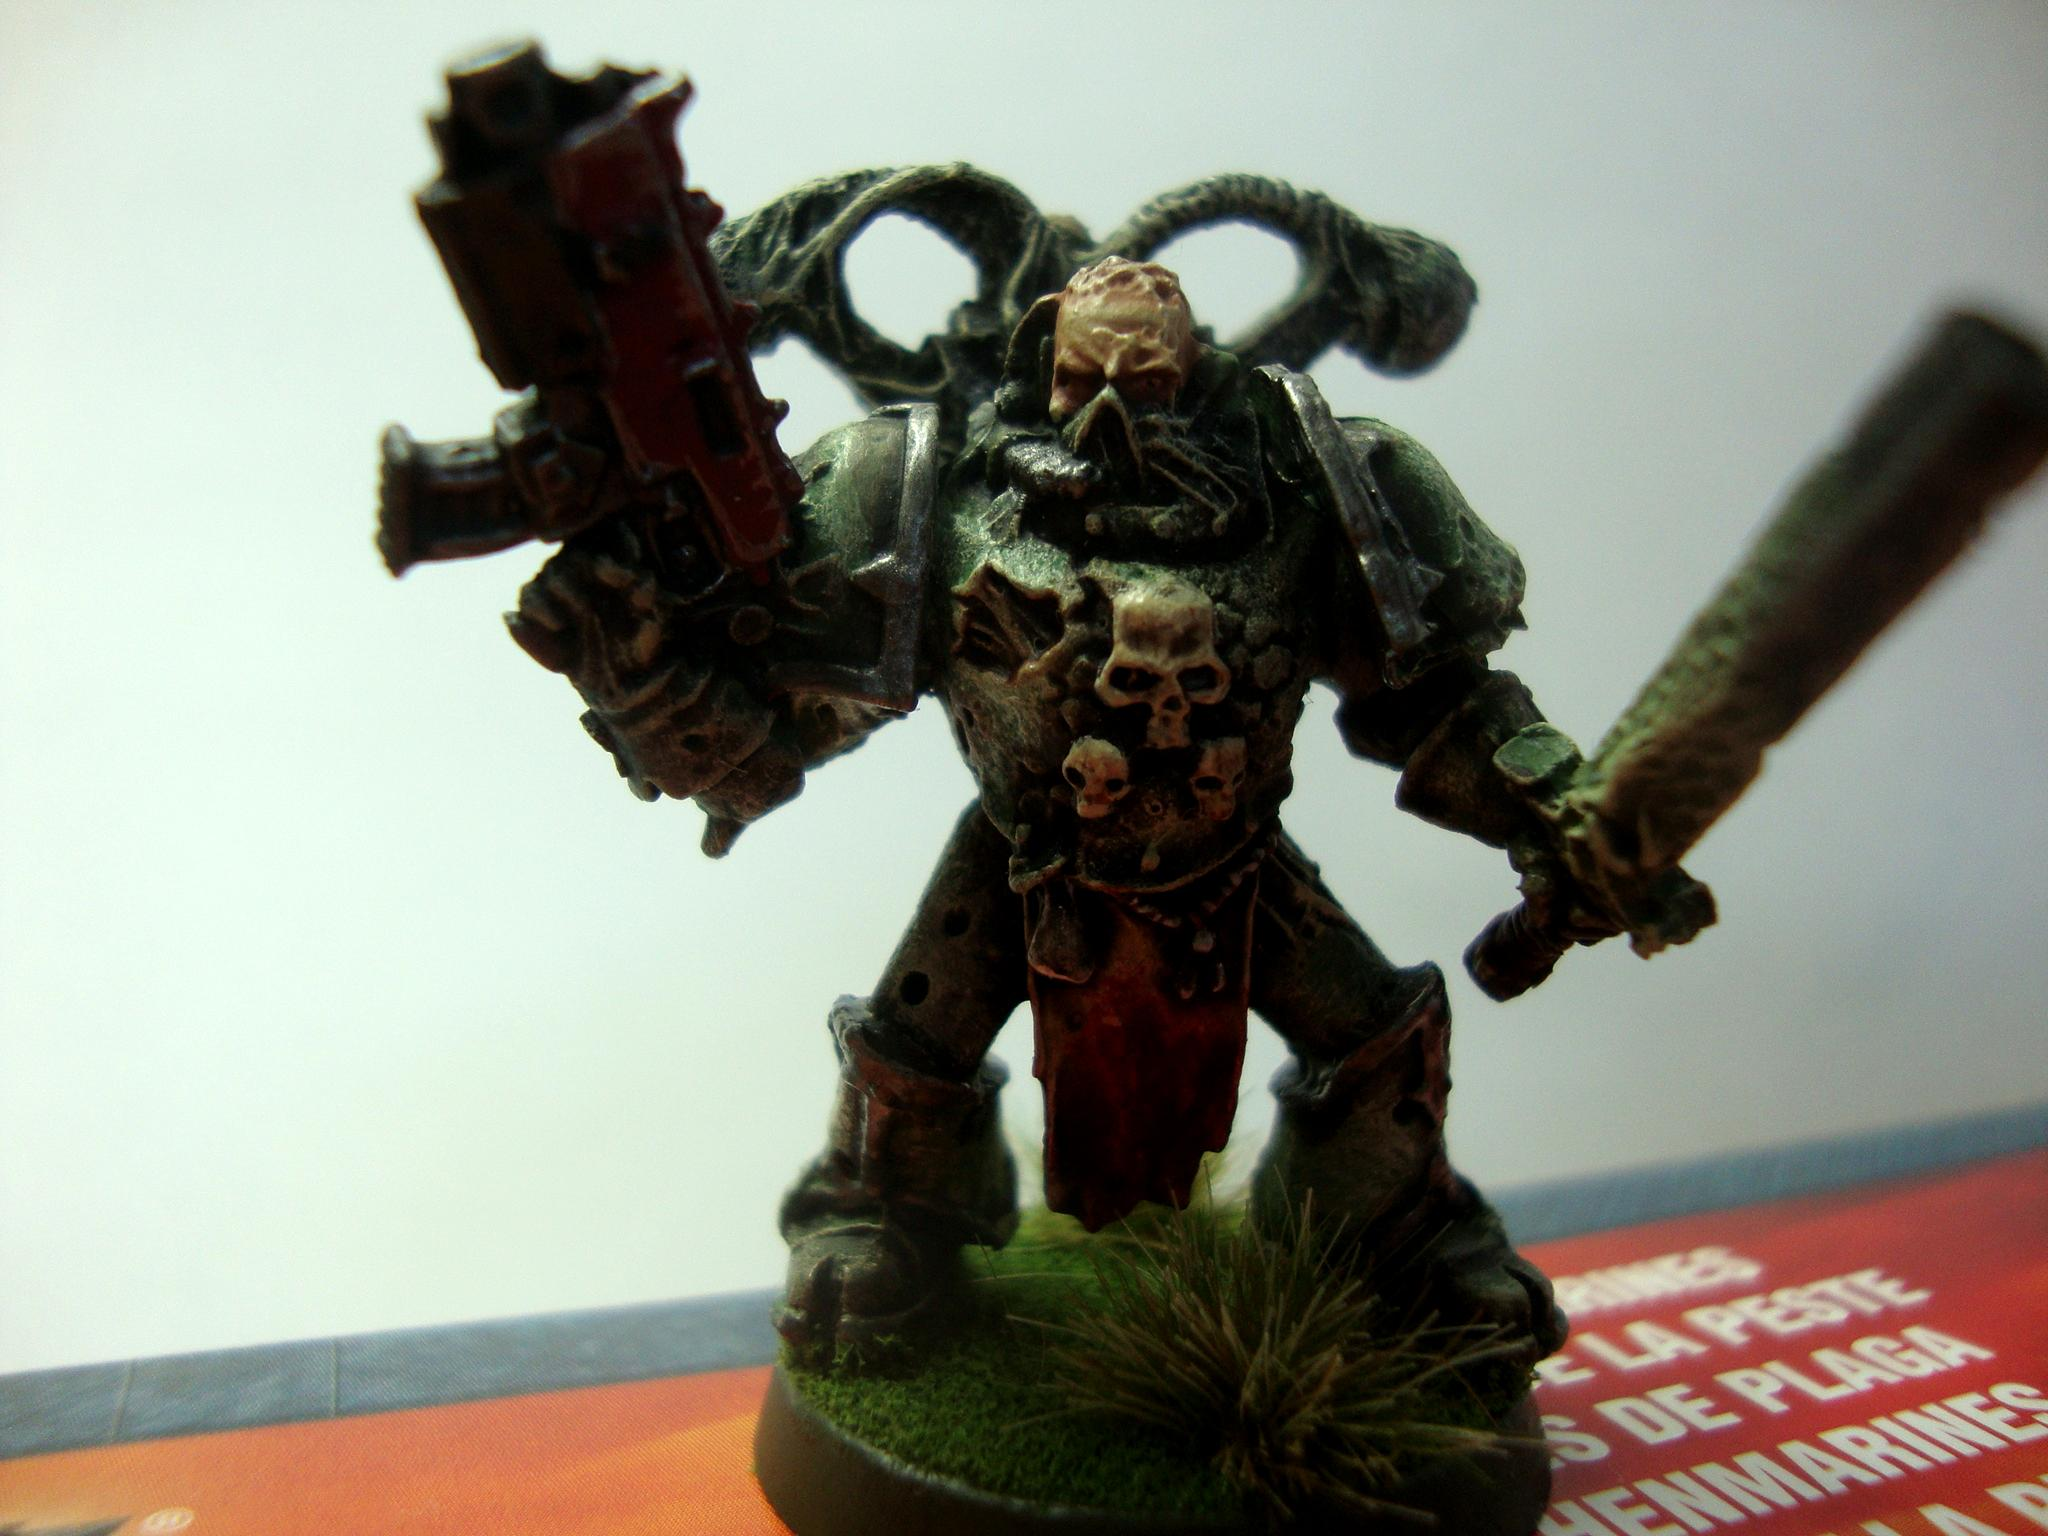 Bolter, Champion, Chaos, Chaos Space Marines, Death Guard, Destroyer Plague, Disease, Gore, Mortarion, Mutation, Nurgle, Plague, Plague Marines, Space Marines, Typhus, Warhammer 40,000